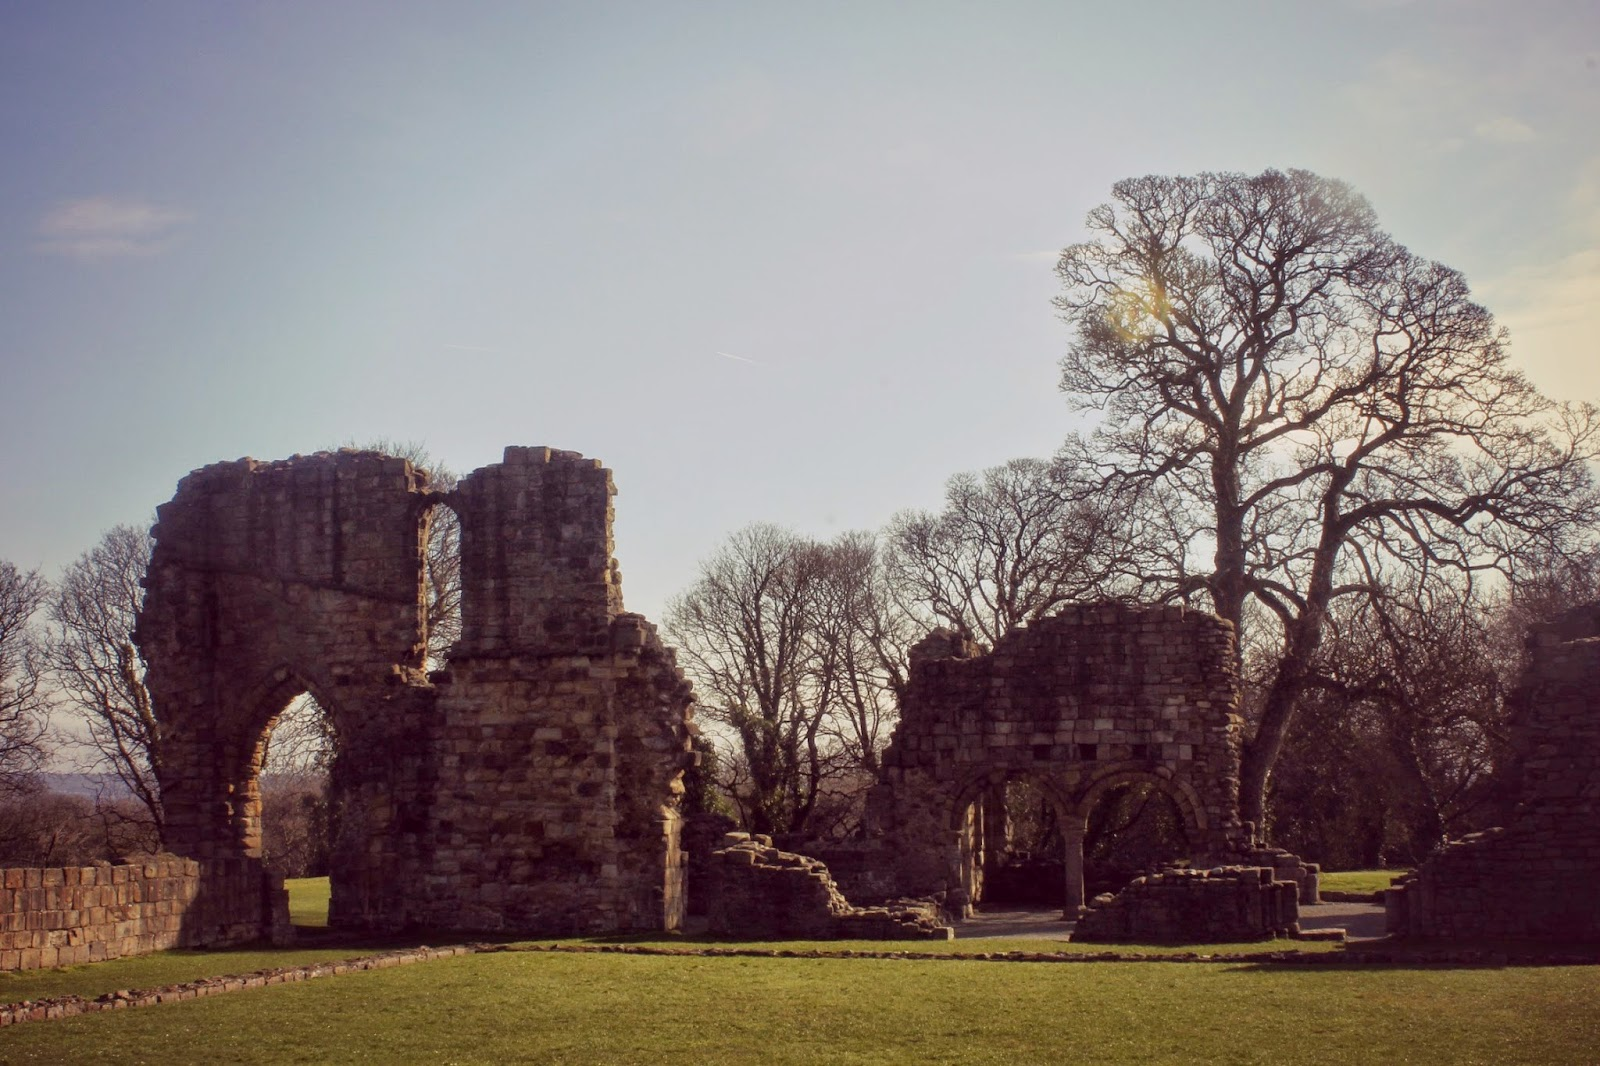 greenfield park abbey ruins